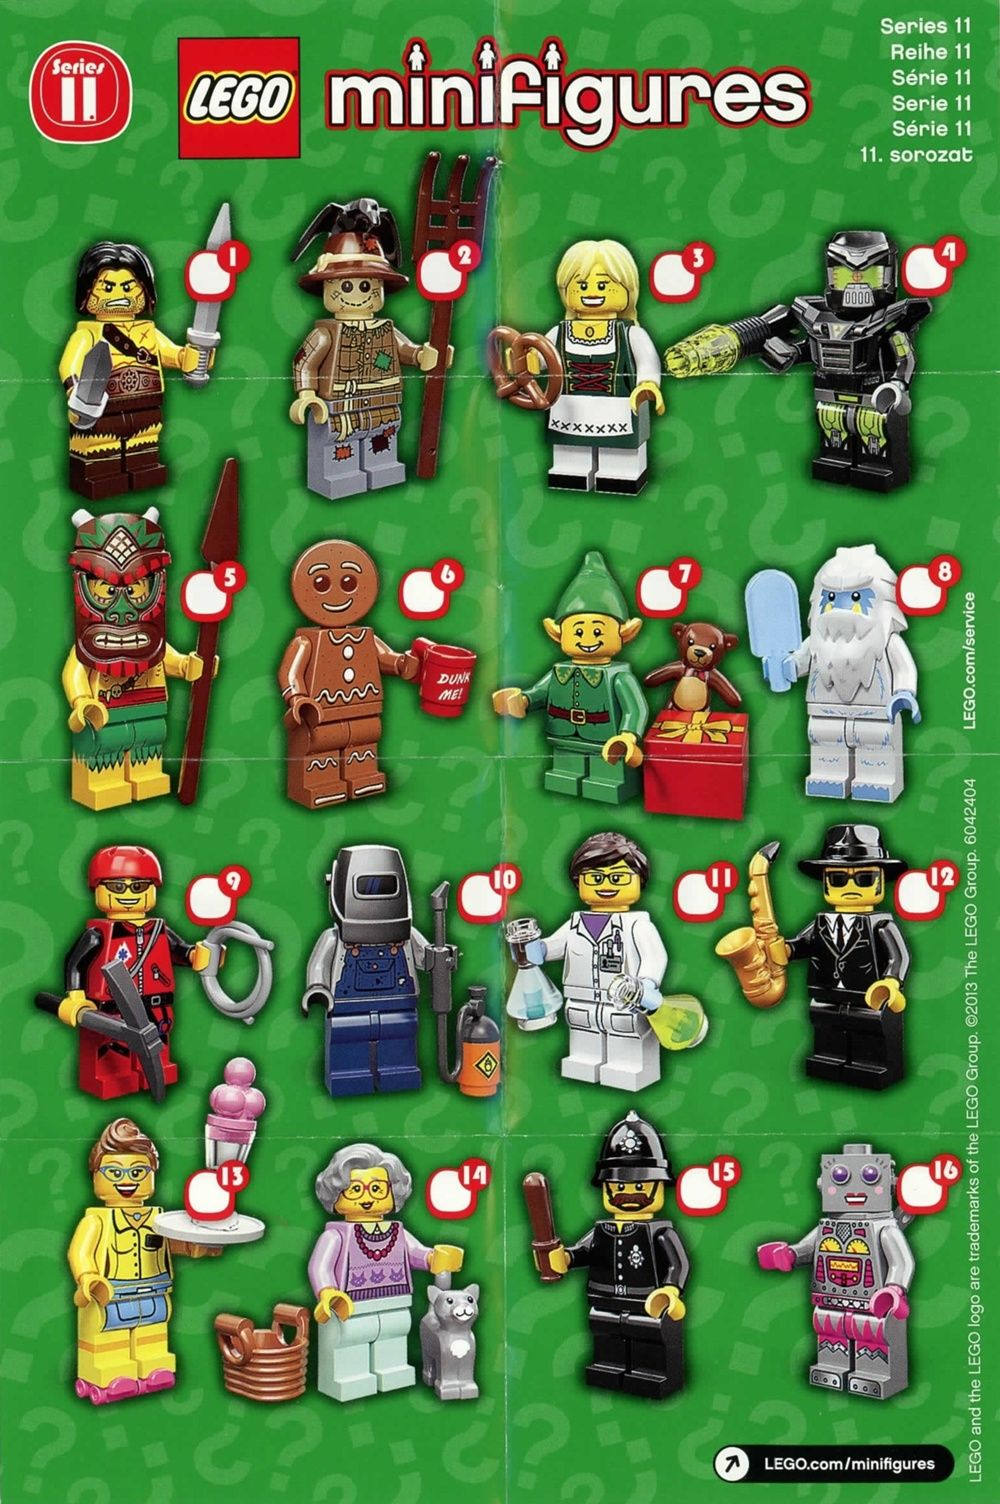 MINIFIG**** ****NEW LEGO SERIES 11 COLLECTIBLE MOUNTAIN CLIMBER MINIFIGURE